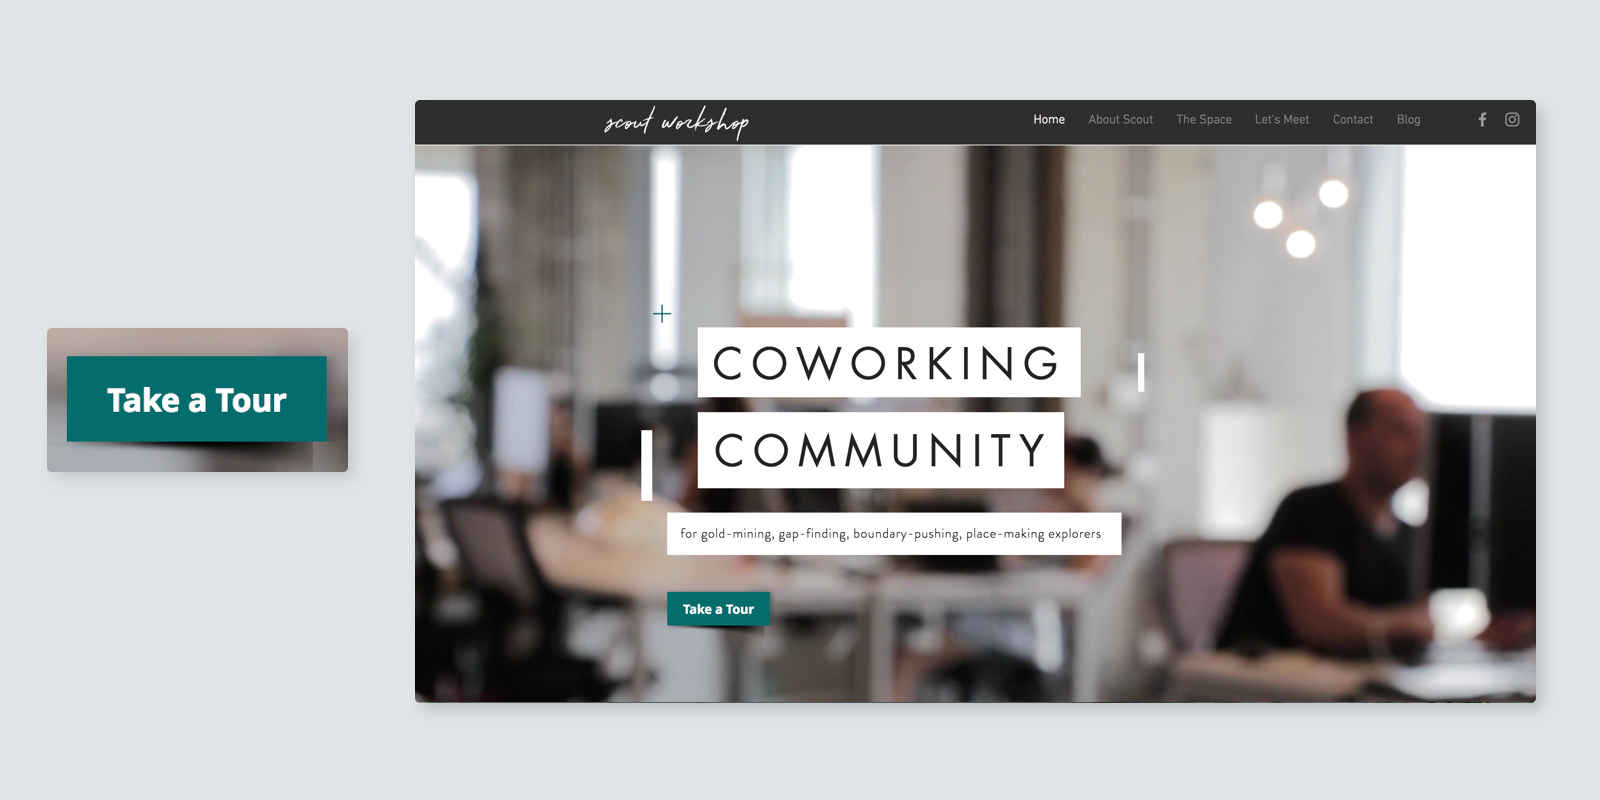 Coworking space Scout Workshop button example